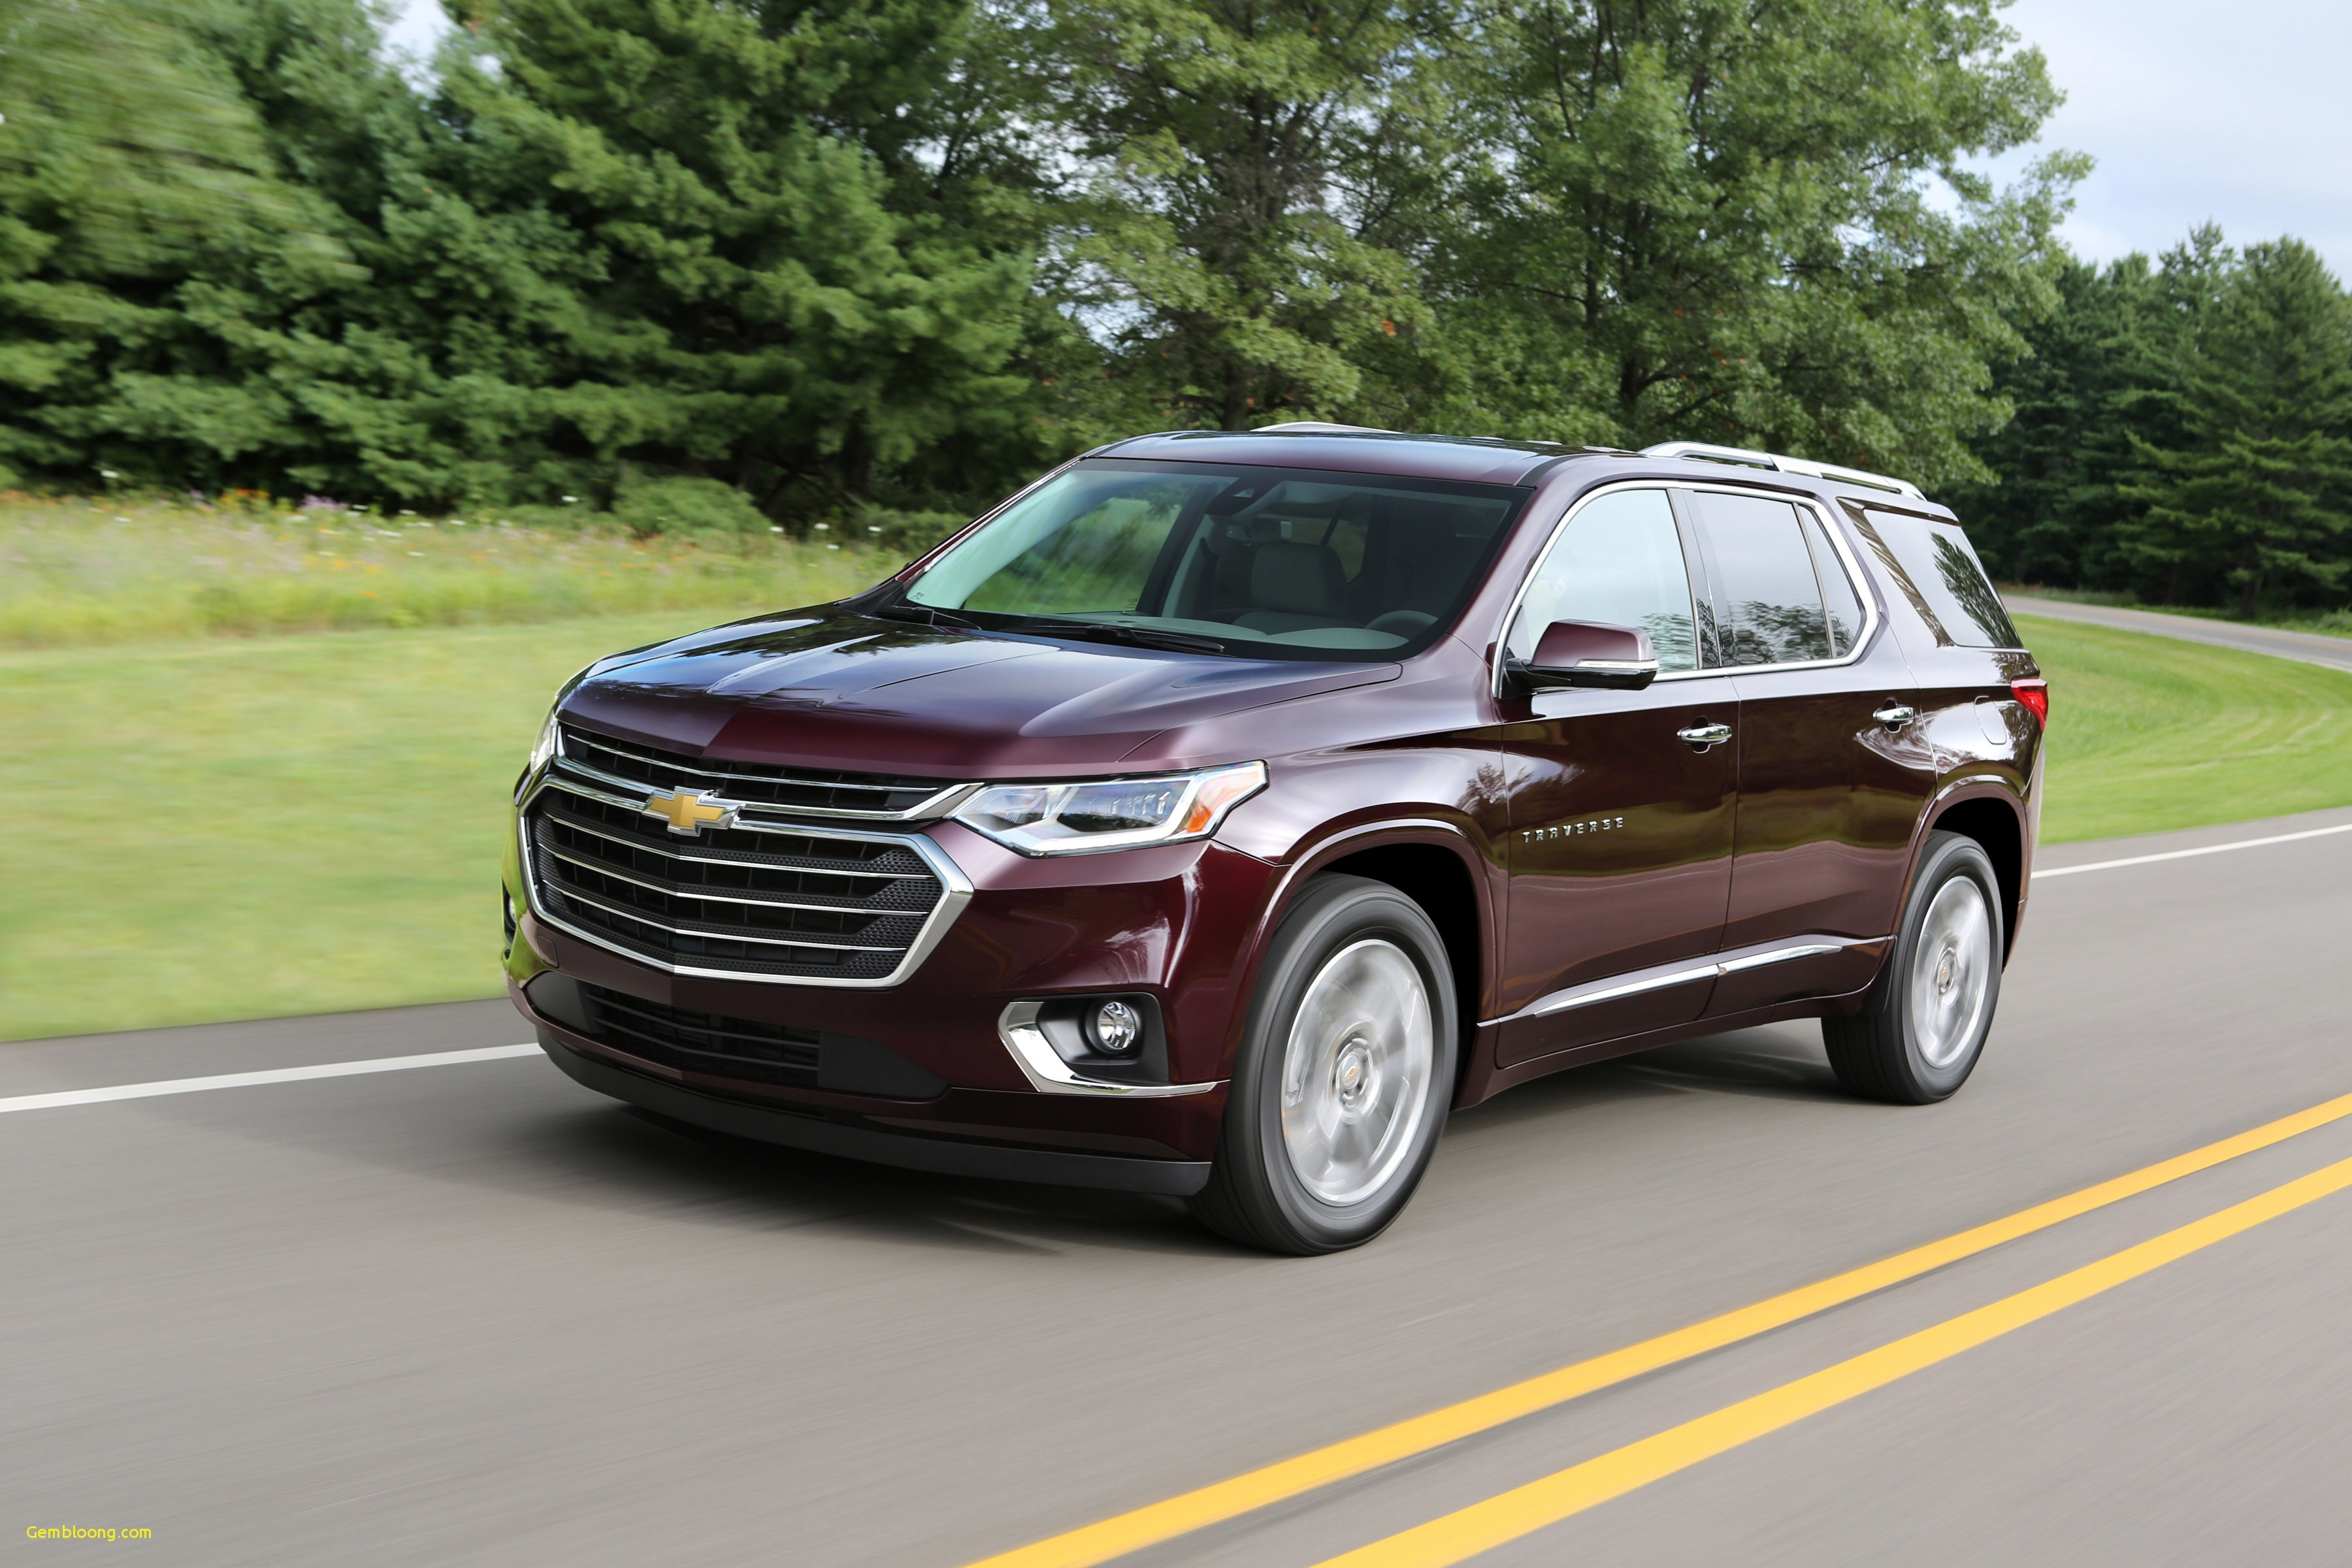 62 A 2020 All Chevy Equinox New Review